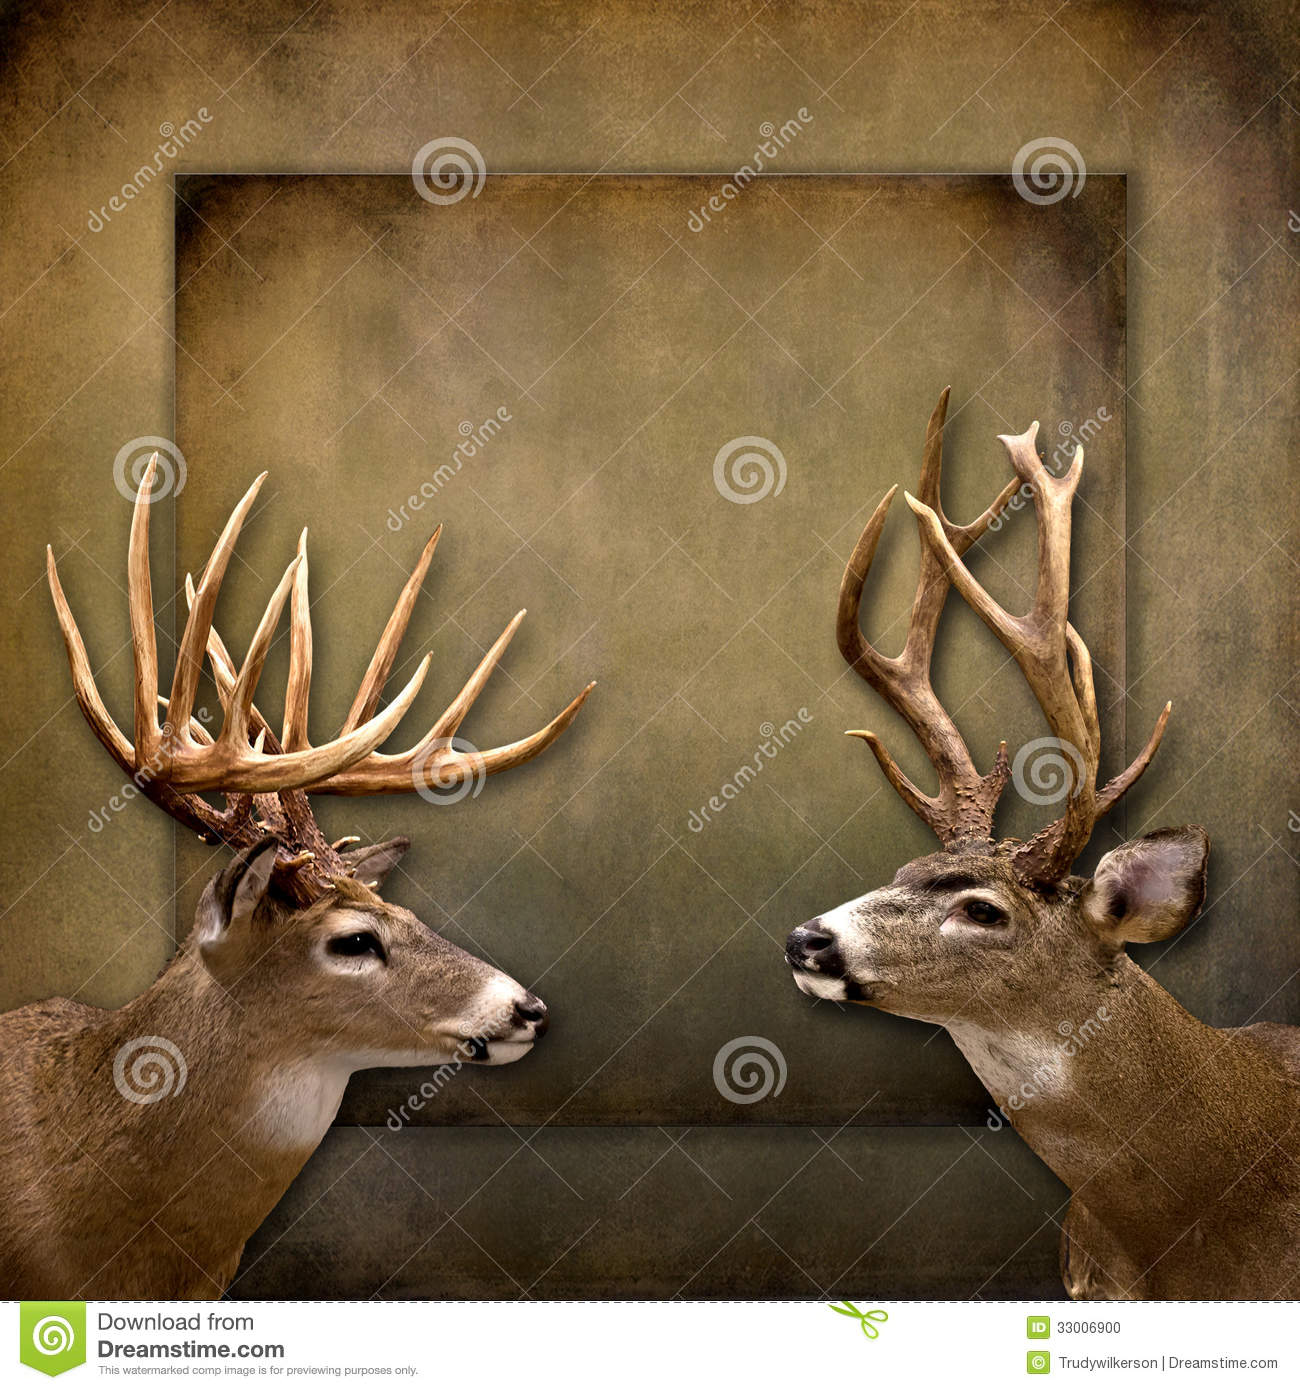 Buck/Deer Background Stock Photo - Image: 33006900